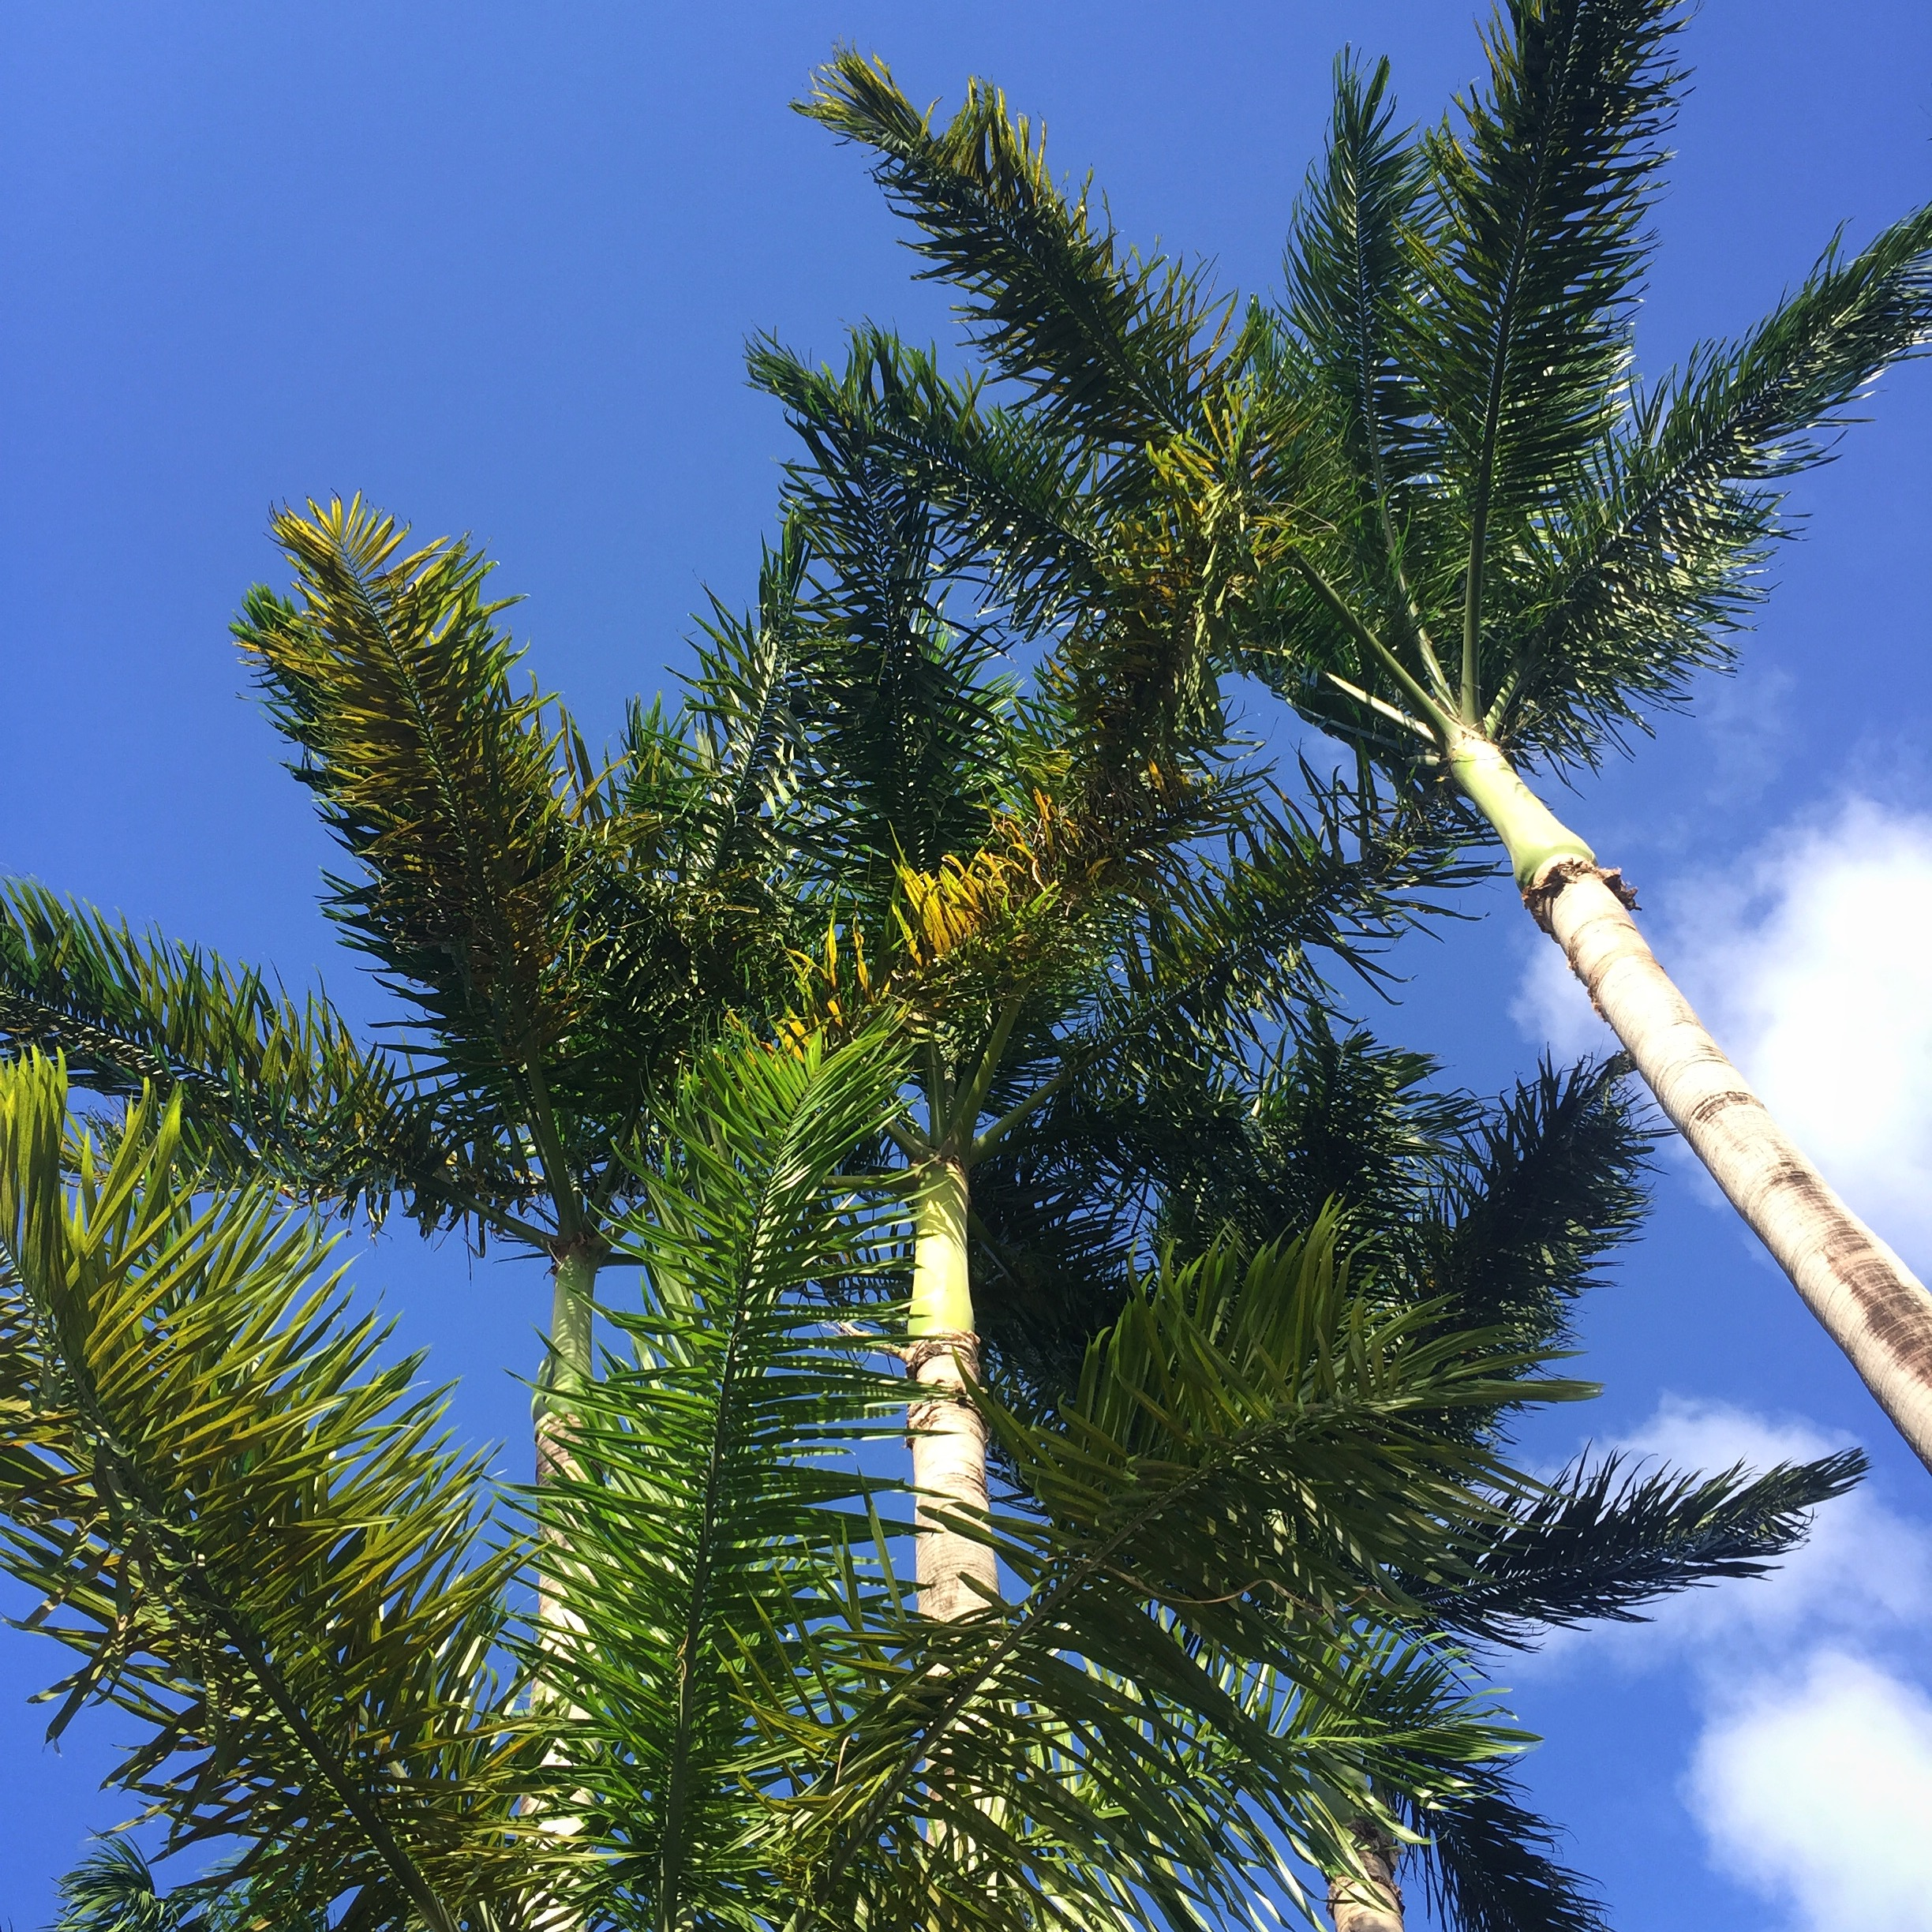 palms trees in negril